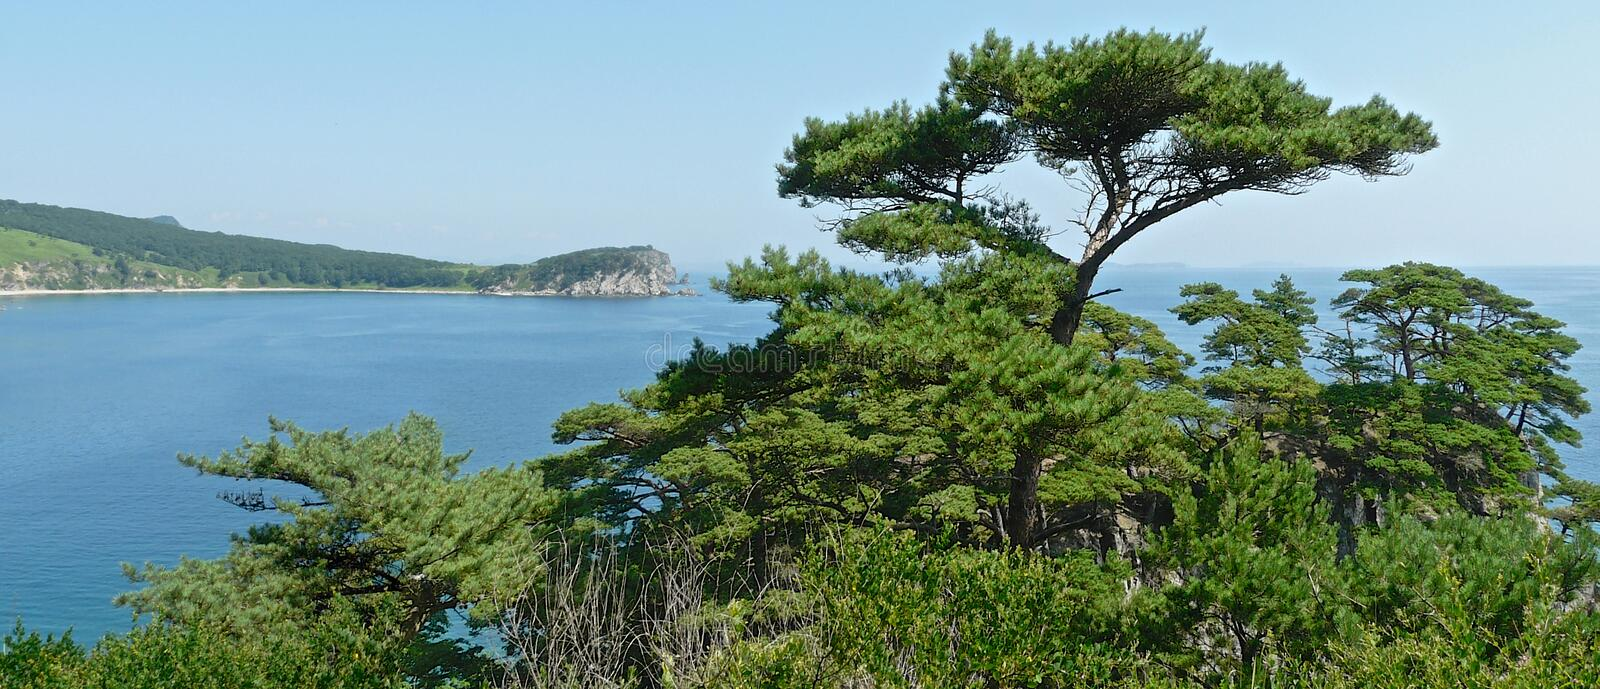 Panoramic view of pines on the coastal cliffs on the blue bay royalty free stock photo